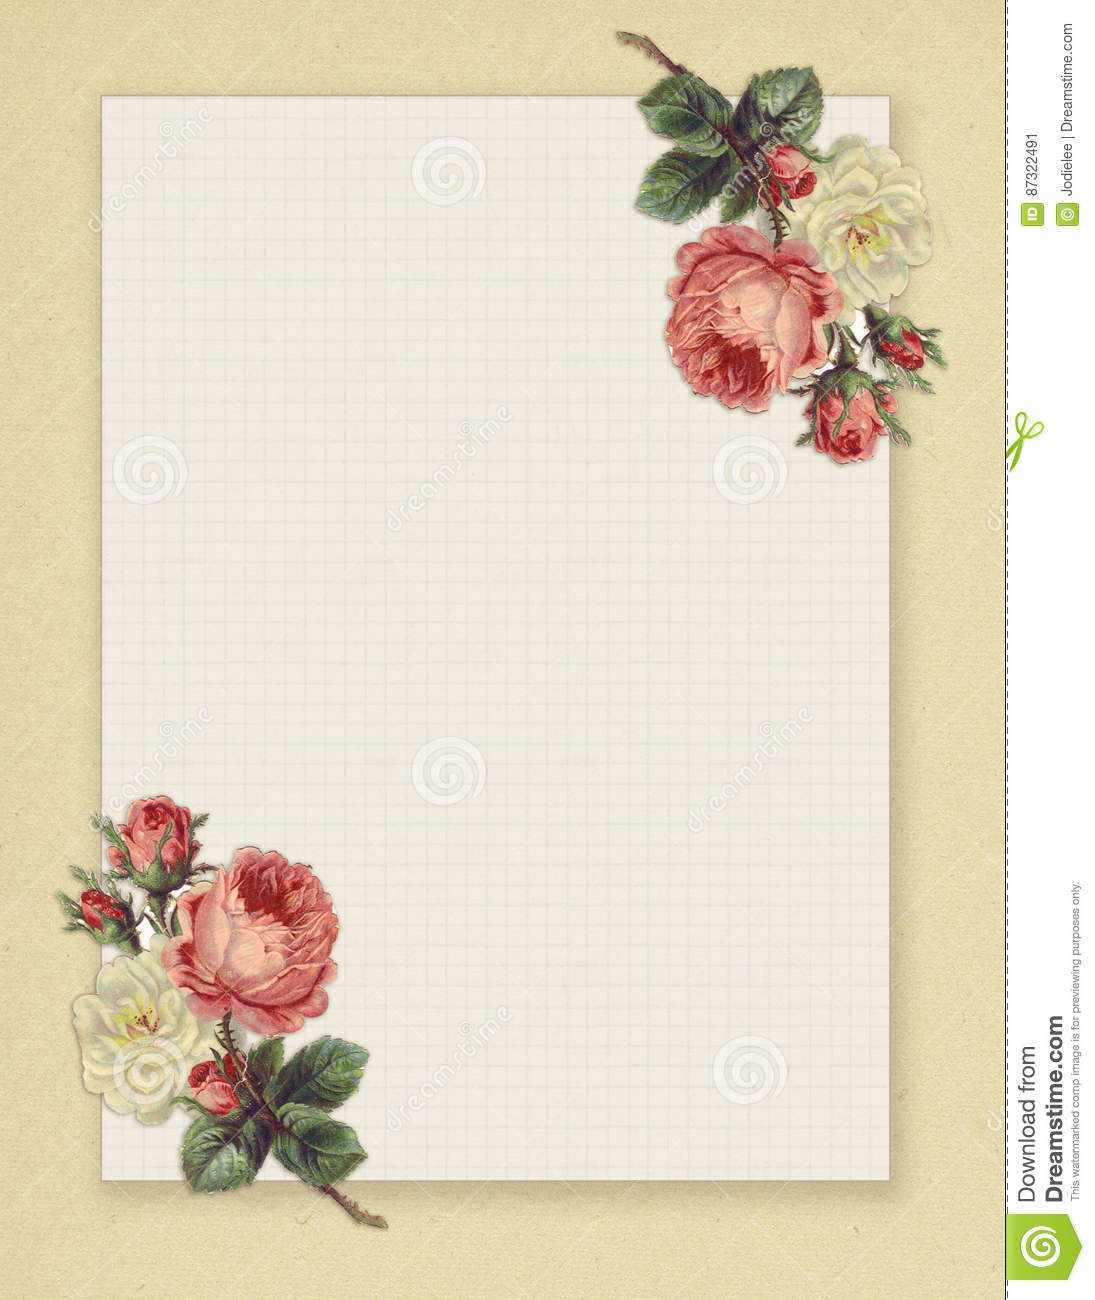 photo relating to Free Printable Backgrounds for Paper named Printable Typical Shabby Stylish Design and style Floral Rose Stationary